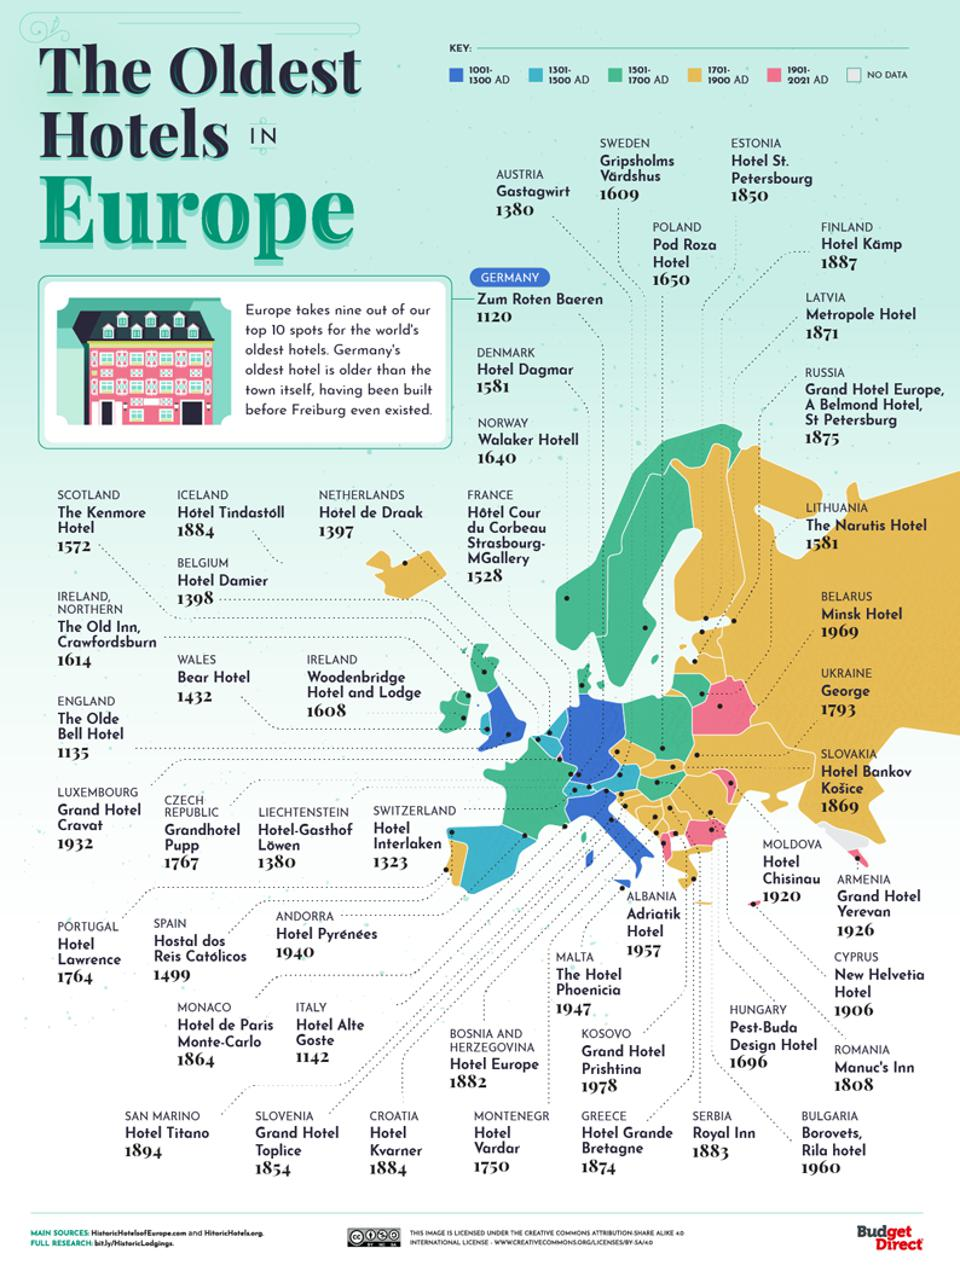 A map of the oldest hotels in Europe.